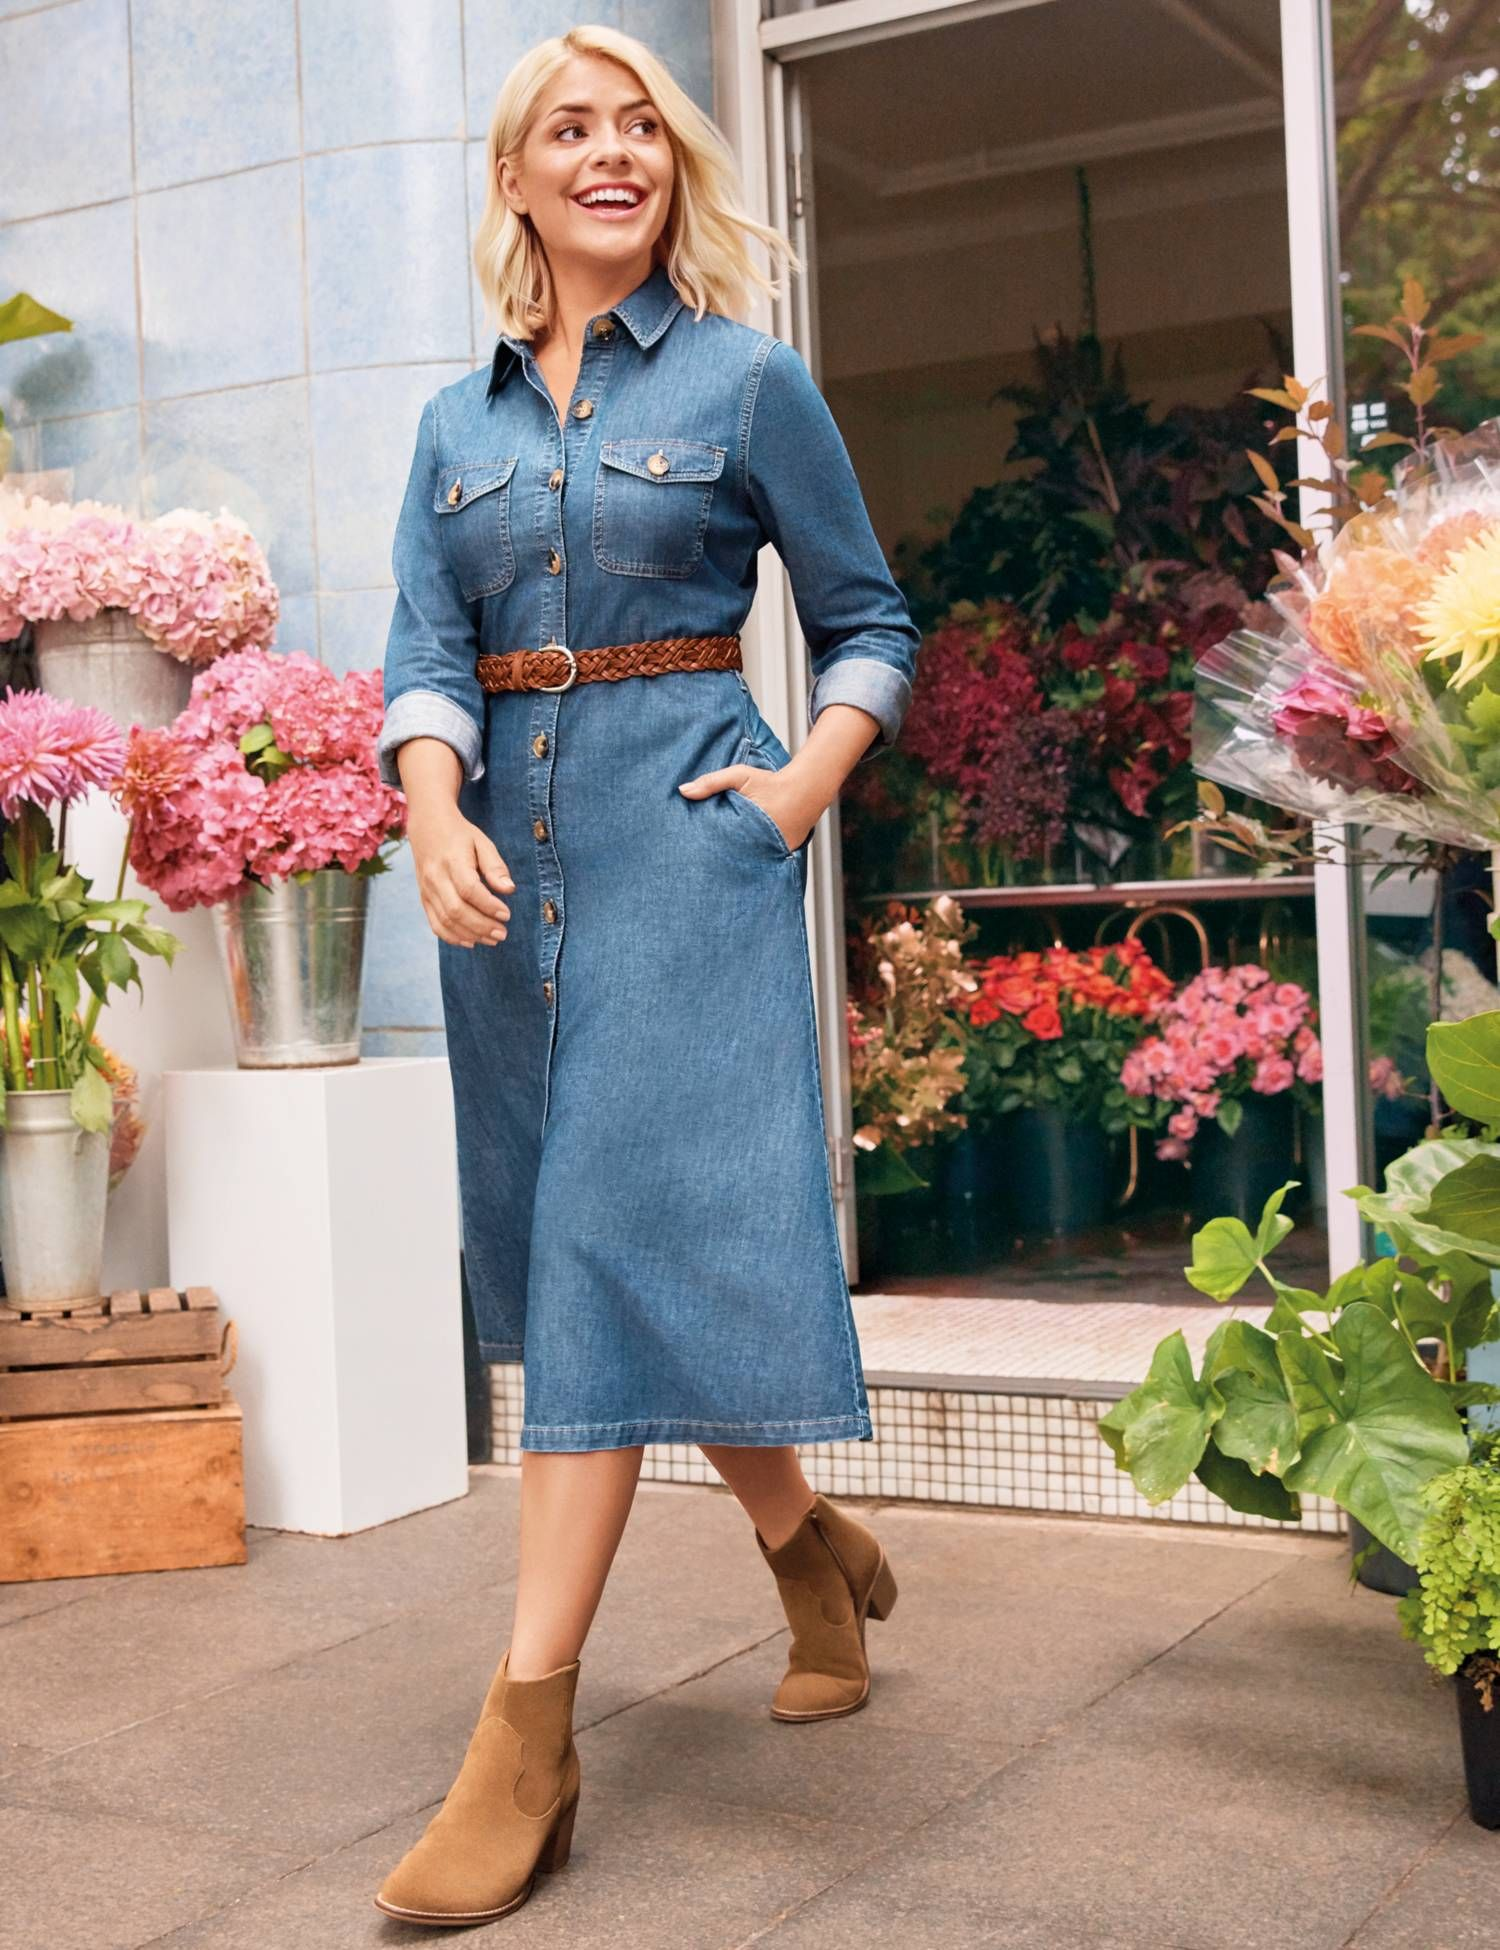 830cad8f7e Holly Willoughby's M&S must-haves: every piece from Holly's Marks & Spencer  range